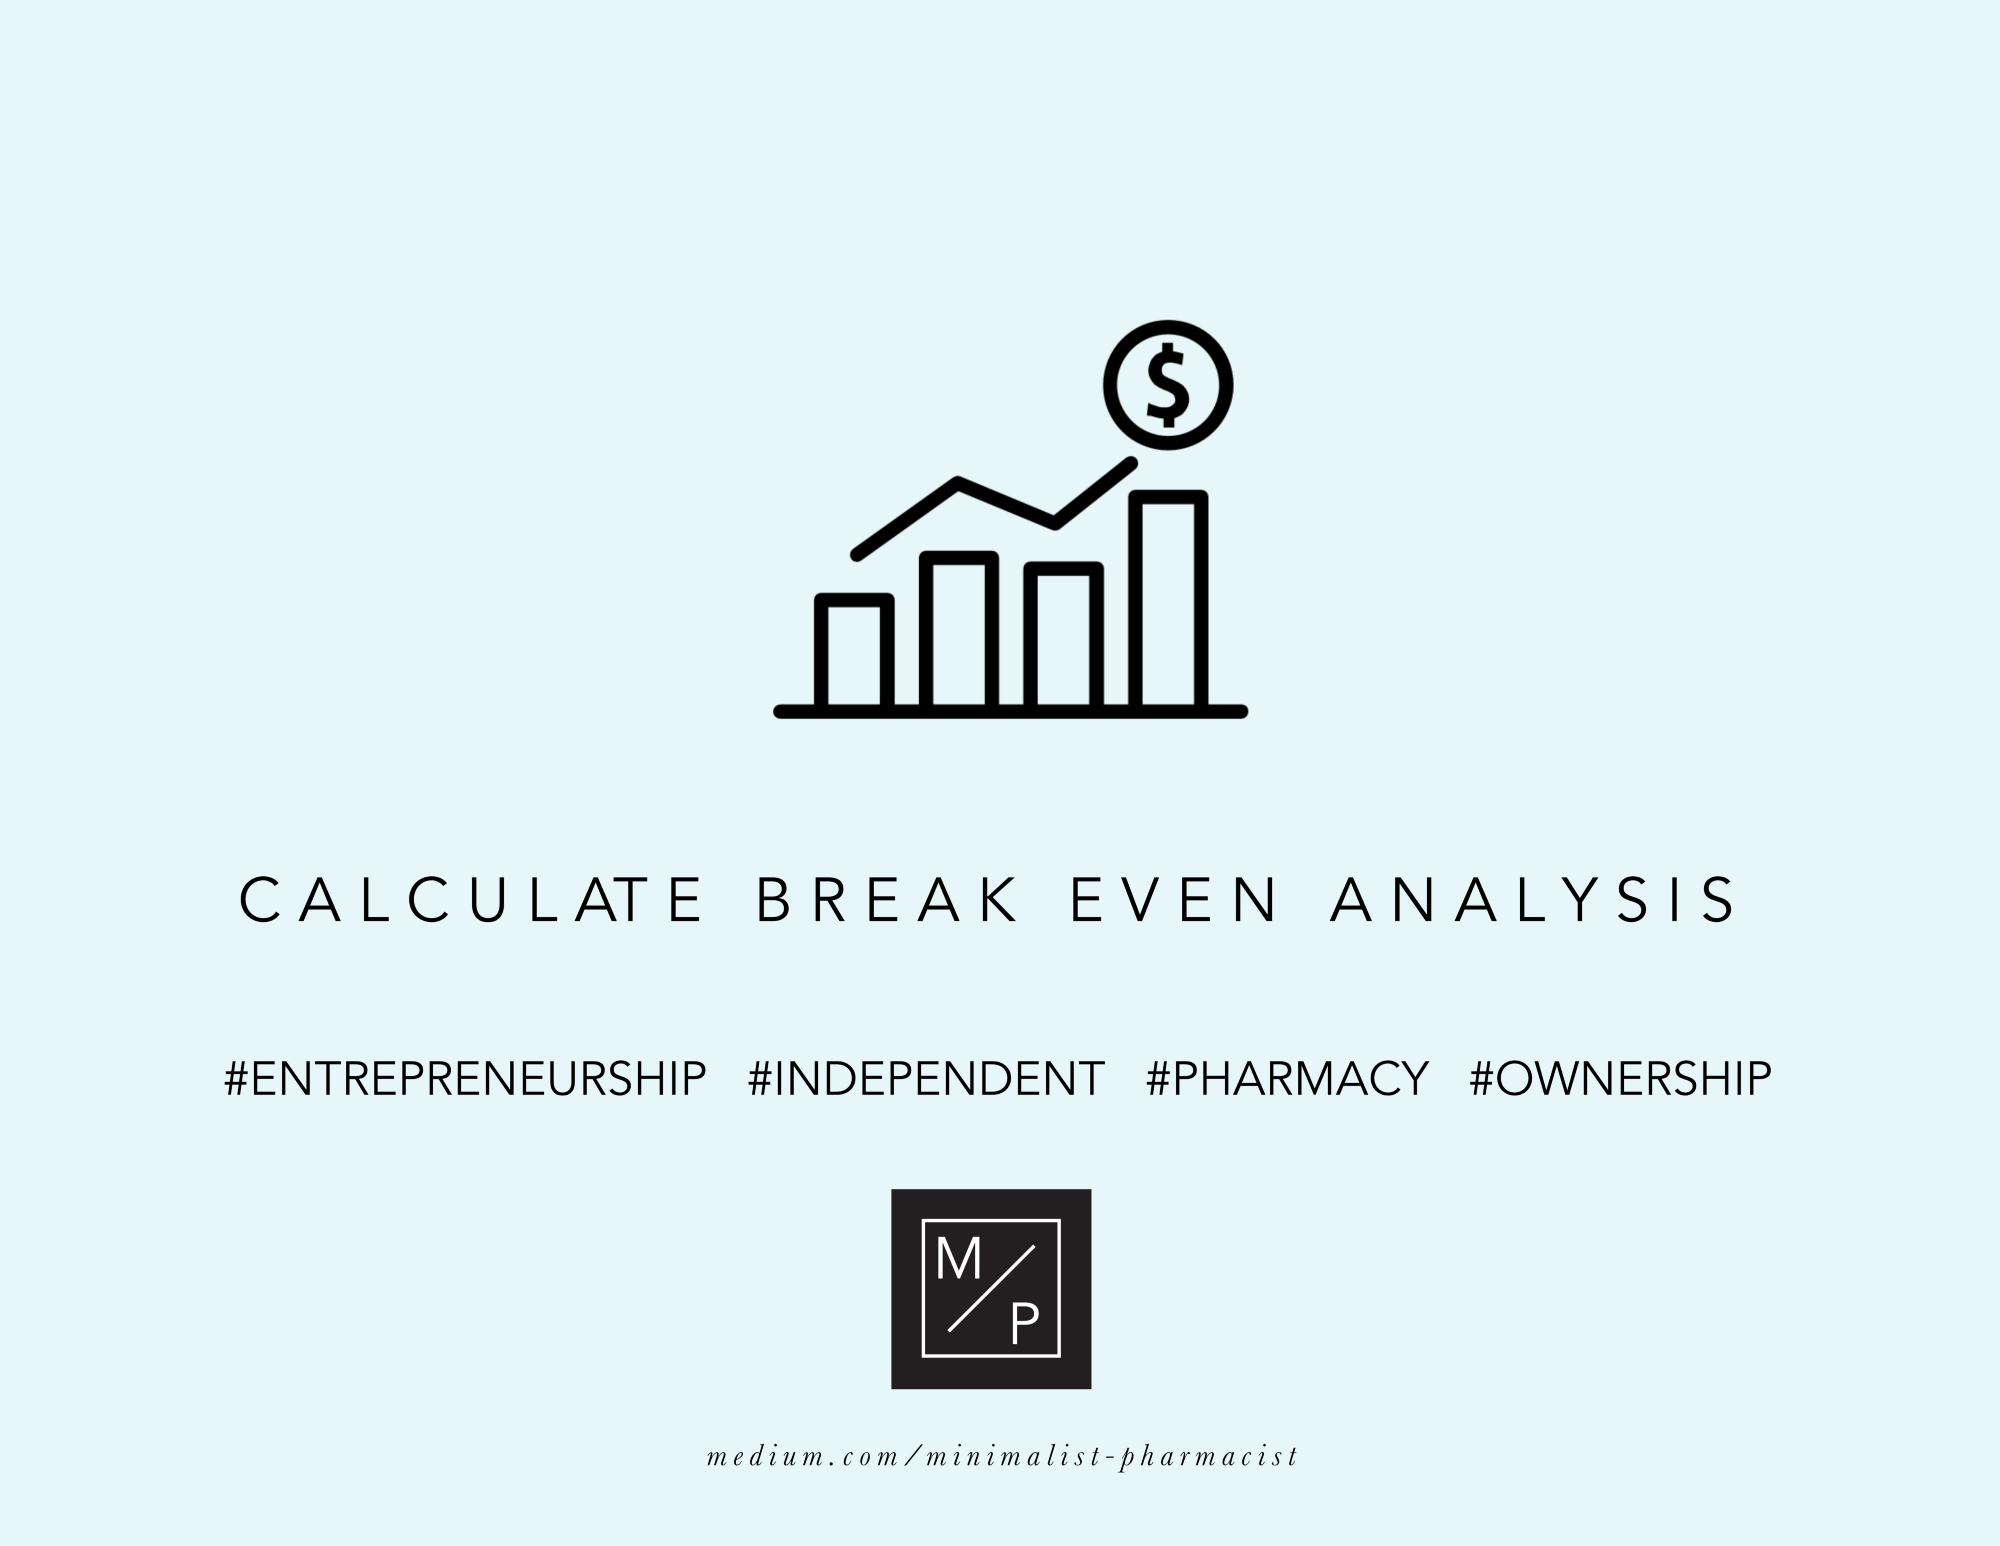 break even analysis cowgirl chocolates The break-even analysis lets you determine what you need to sell, monthly or annually, to cover your costs of doing business—your break-even point.